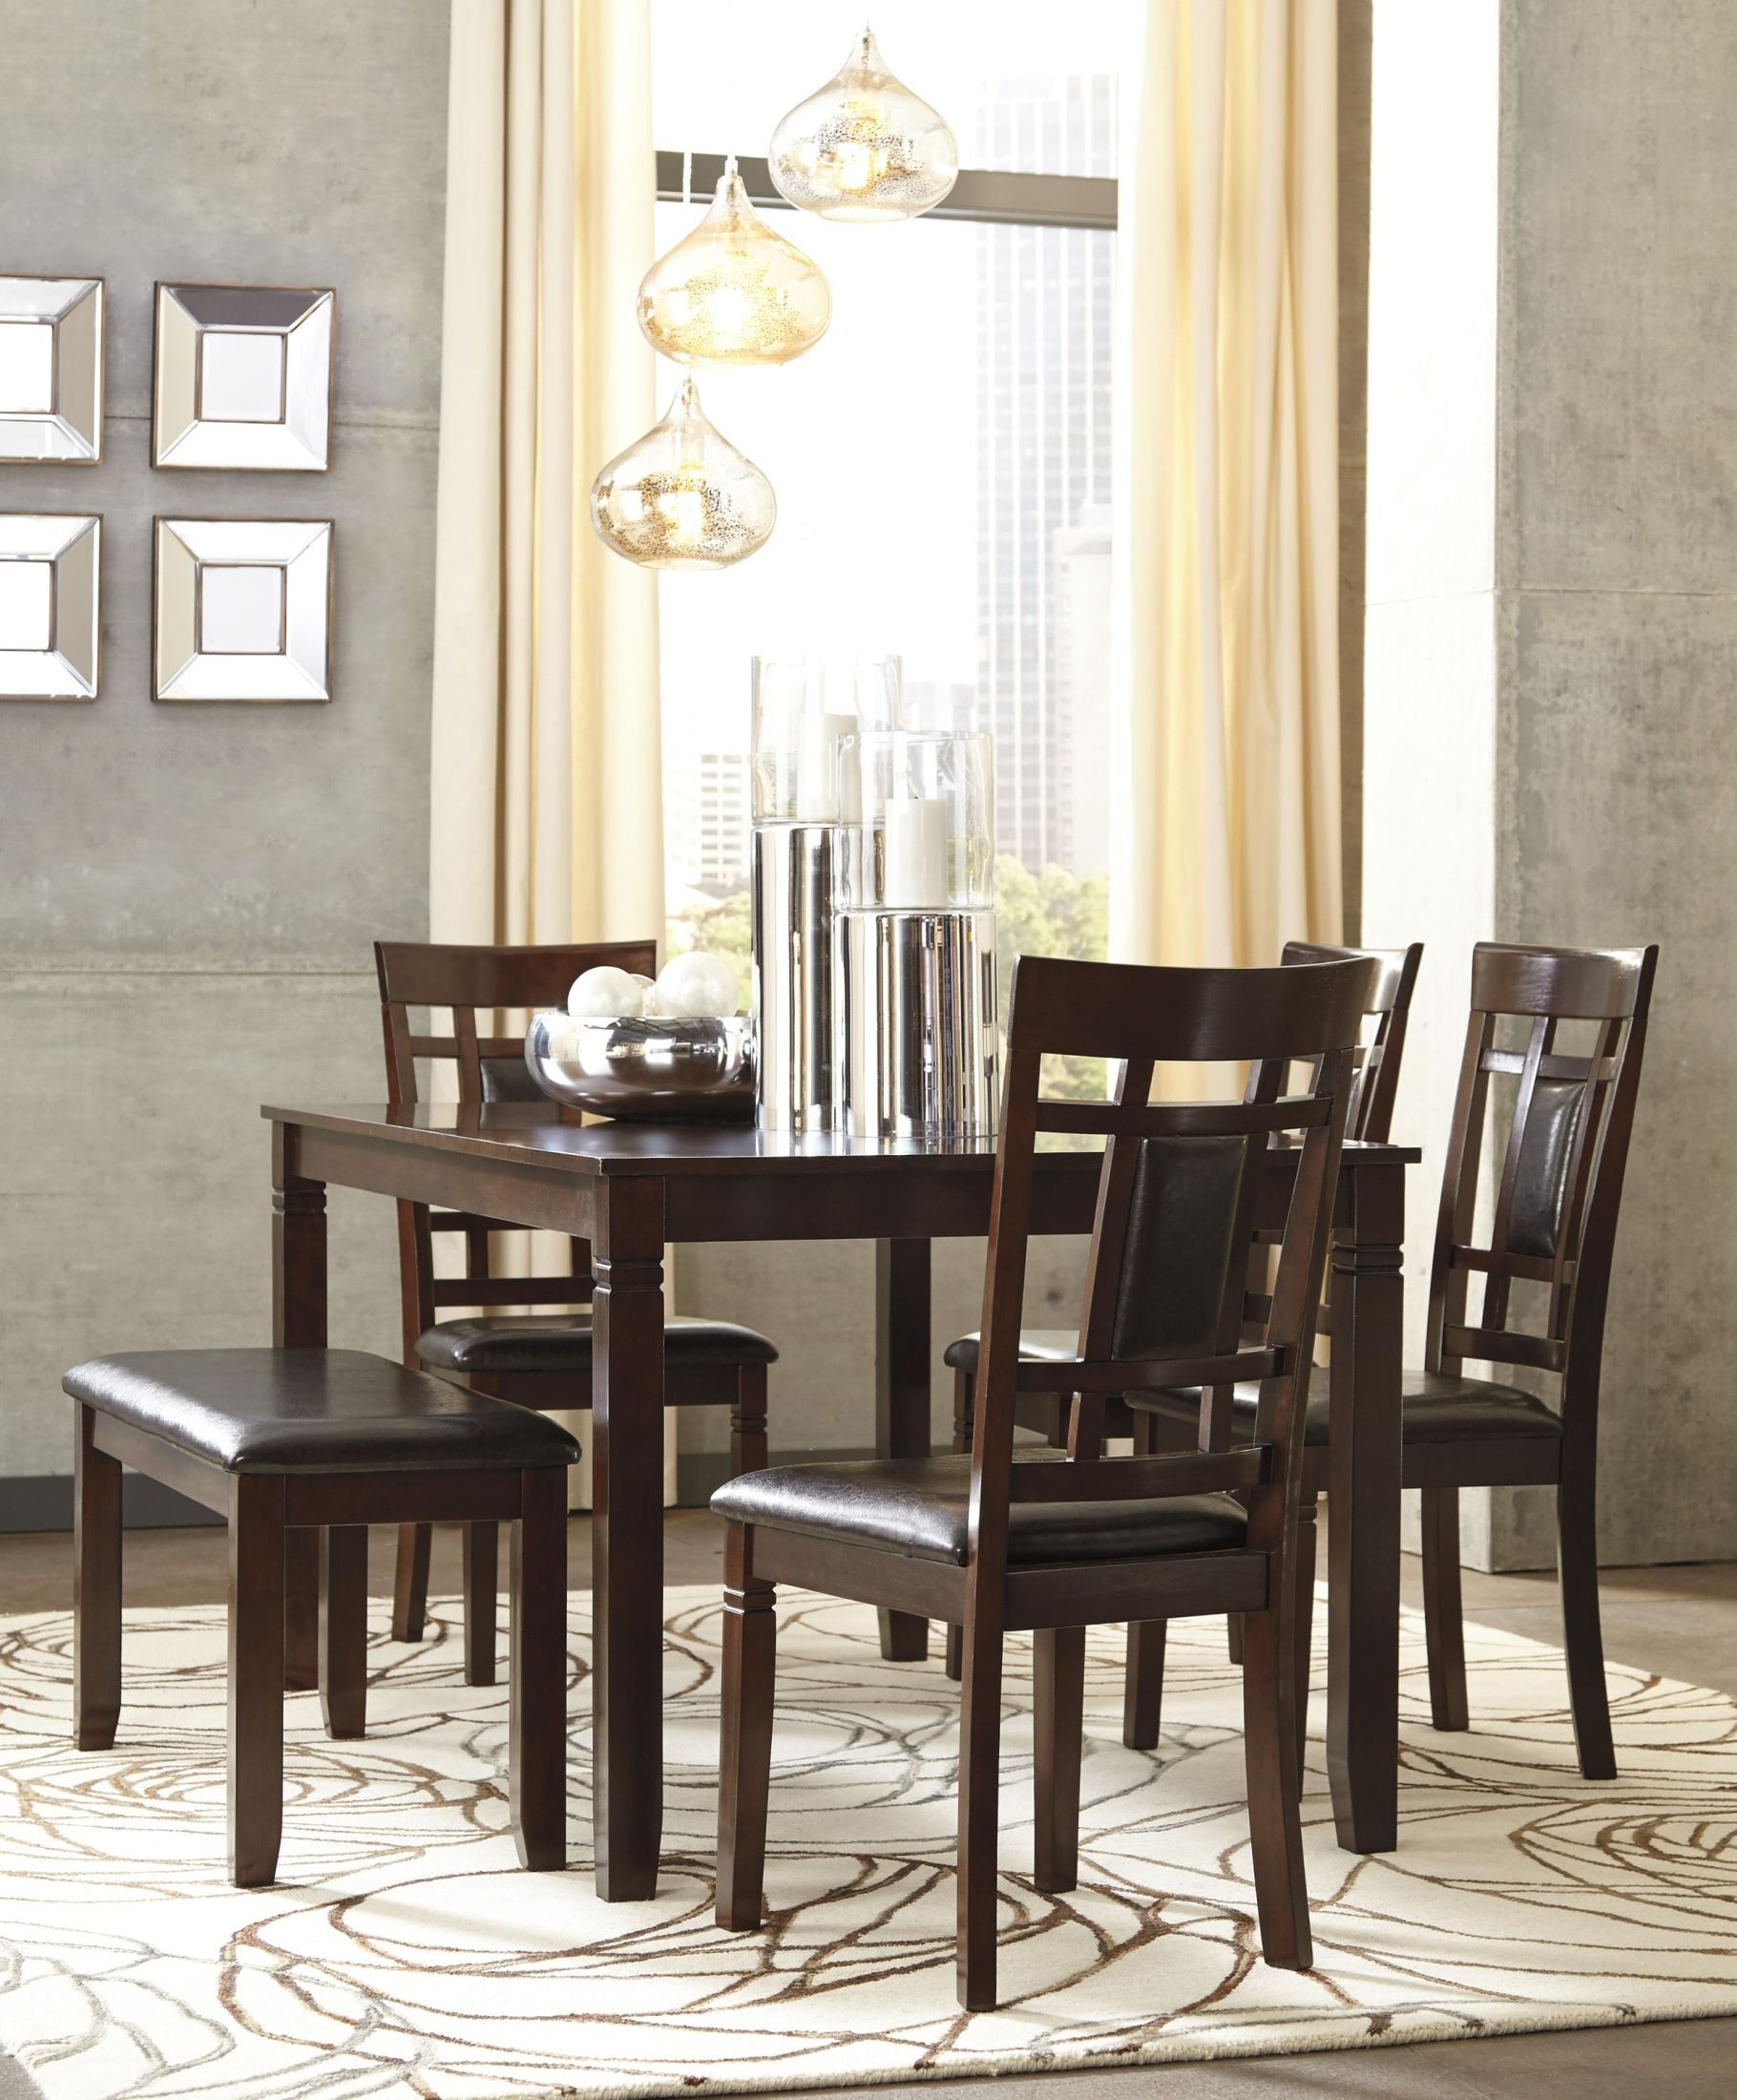 Bennox brown 6 piece rectangular dining room set d384 325 for Dining room sets 6 piece